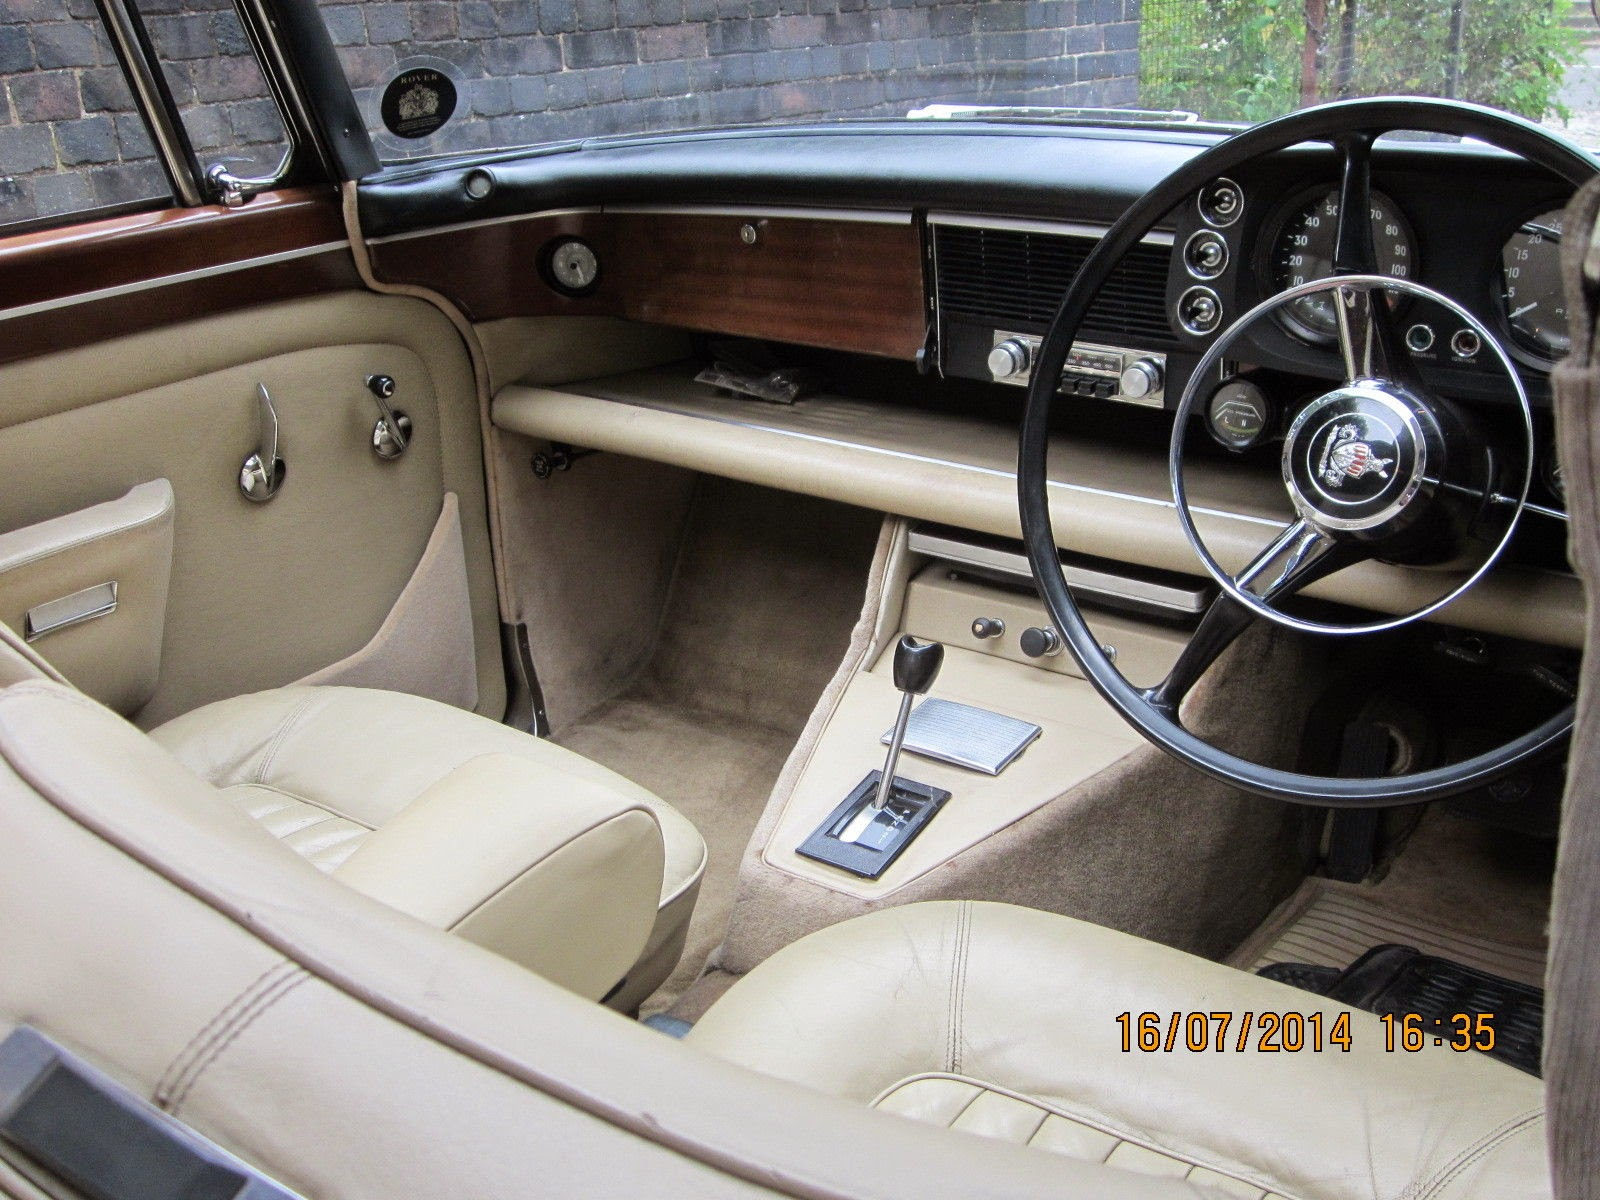 1970 rover p5b full restoration auto restorationice. Black Bedroom Furniture Sets. Home Design Ideas